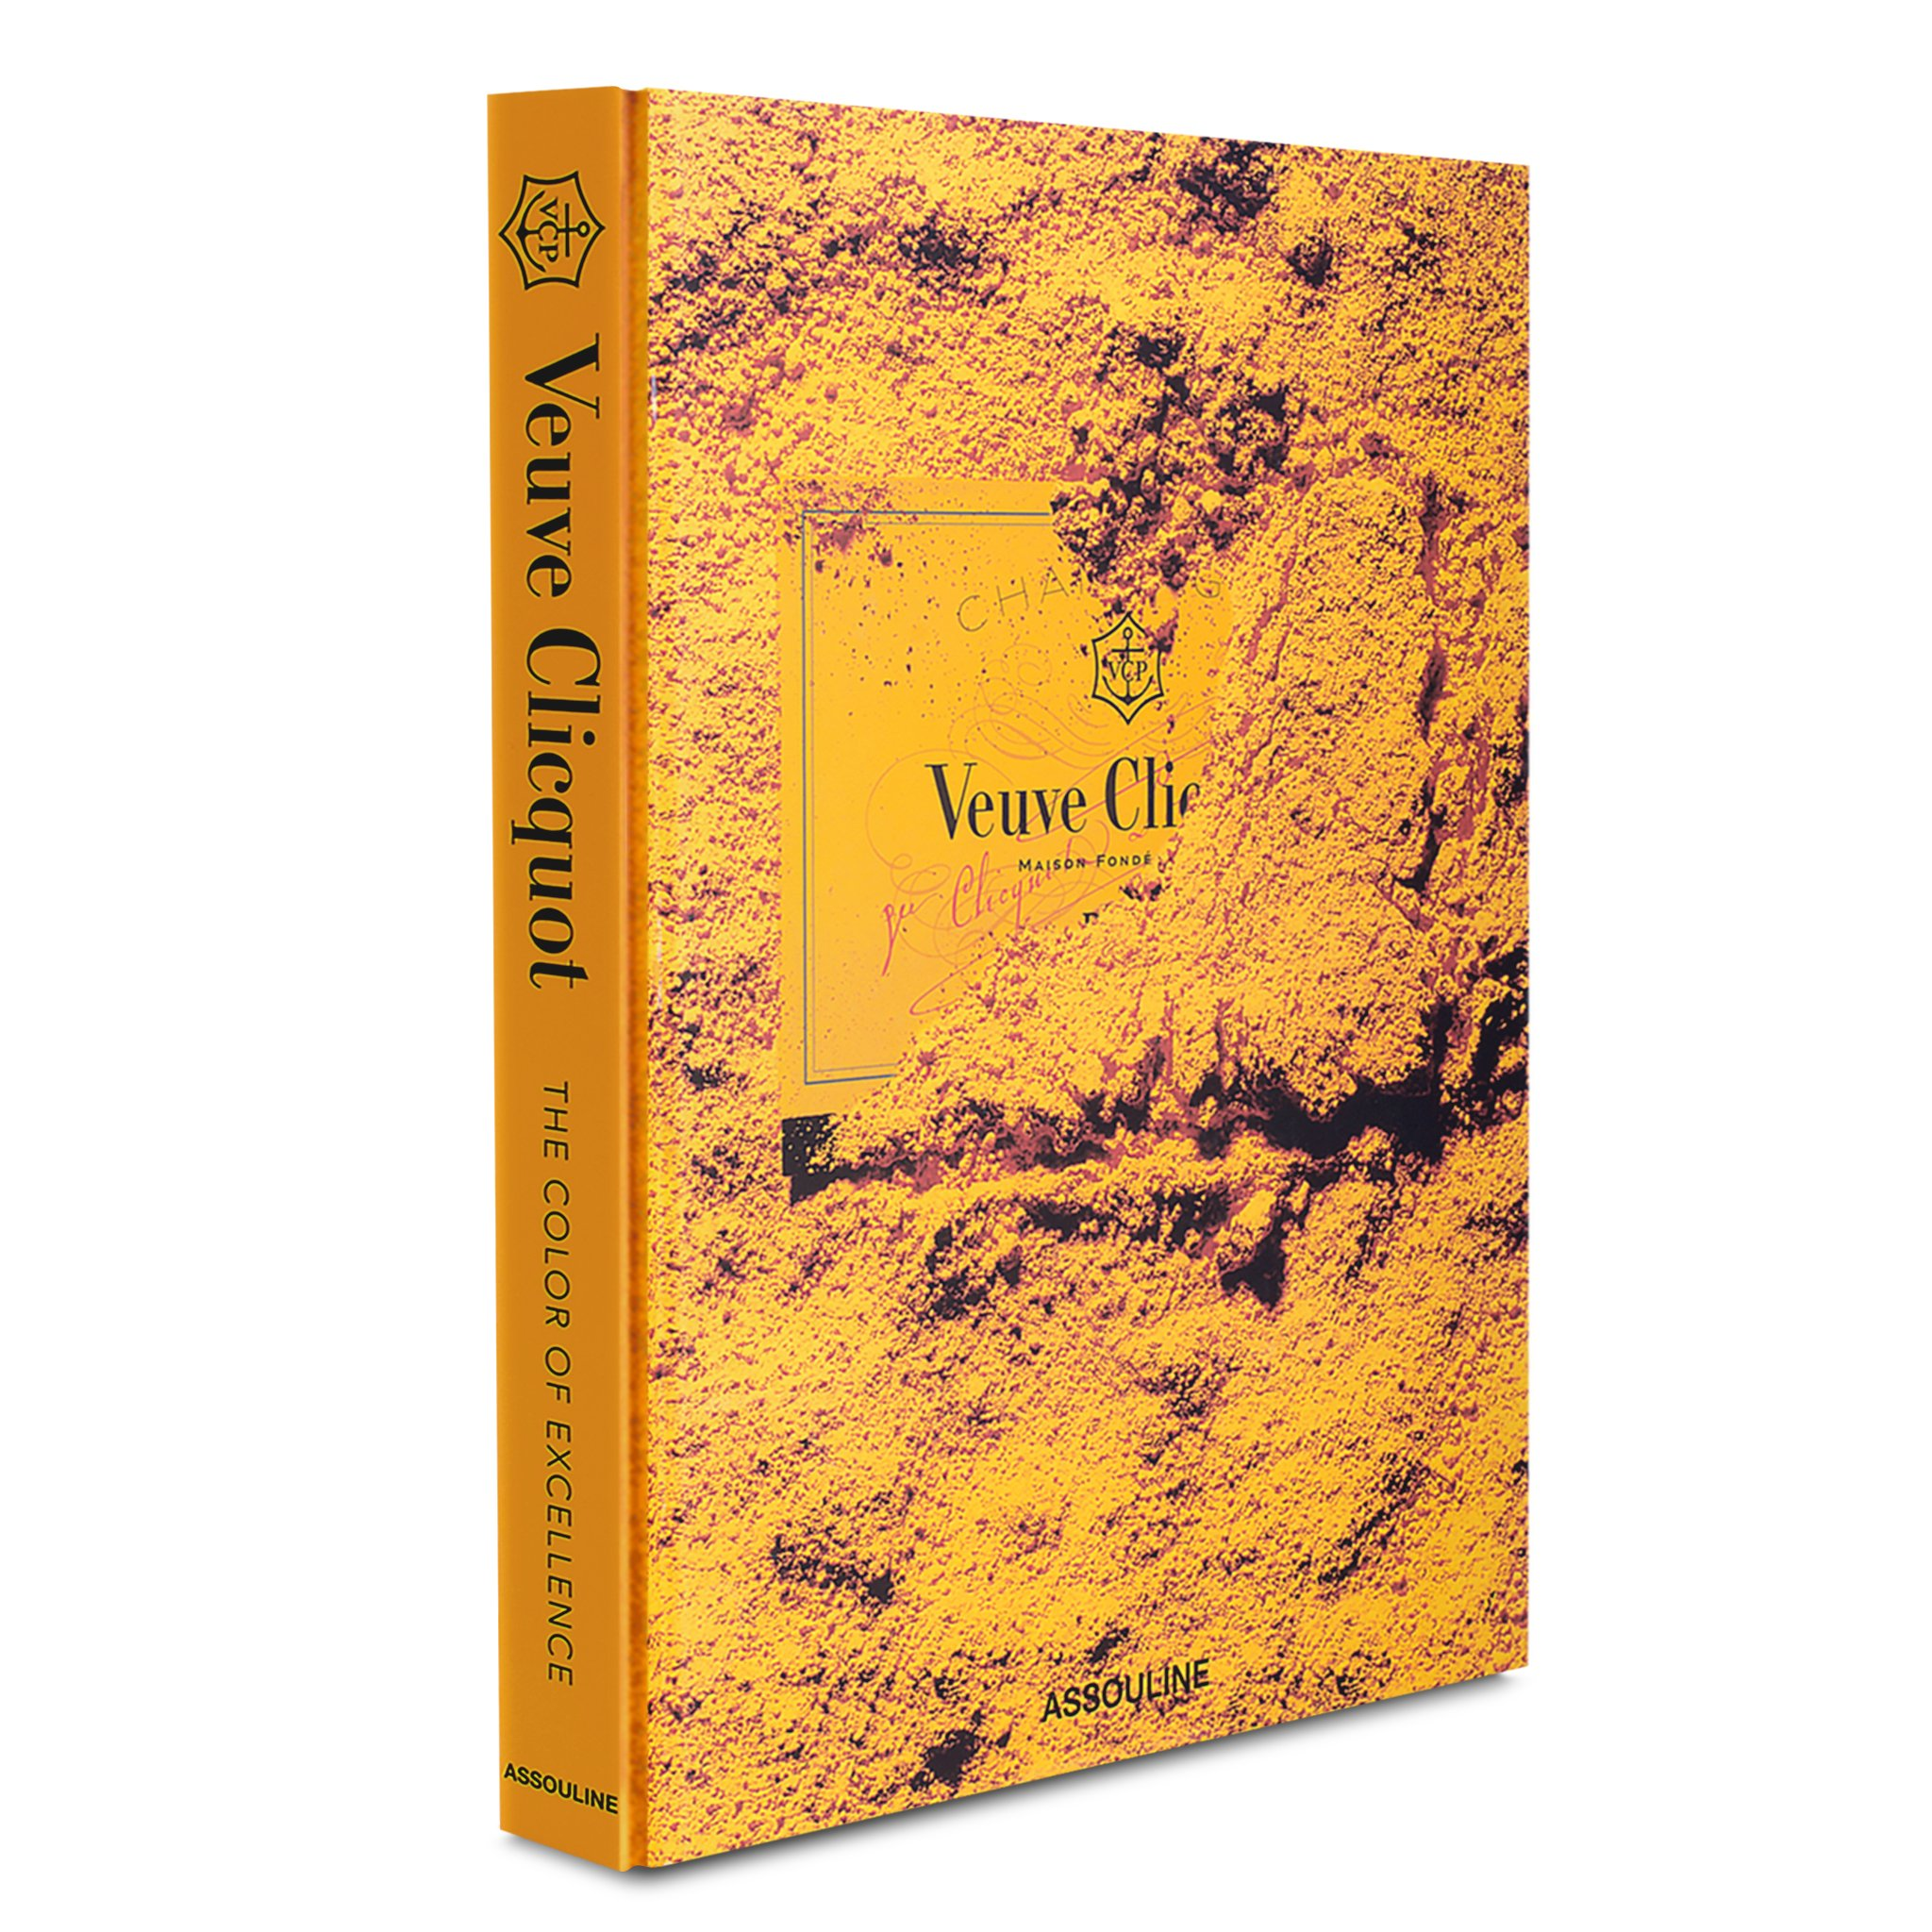 Veuve Clicquot - The Color of Excellence